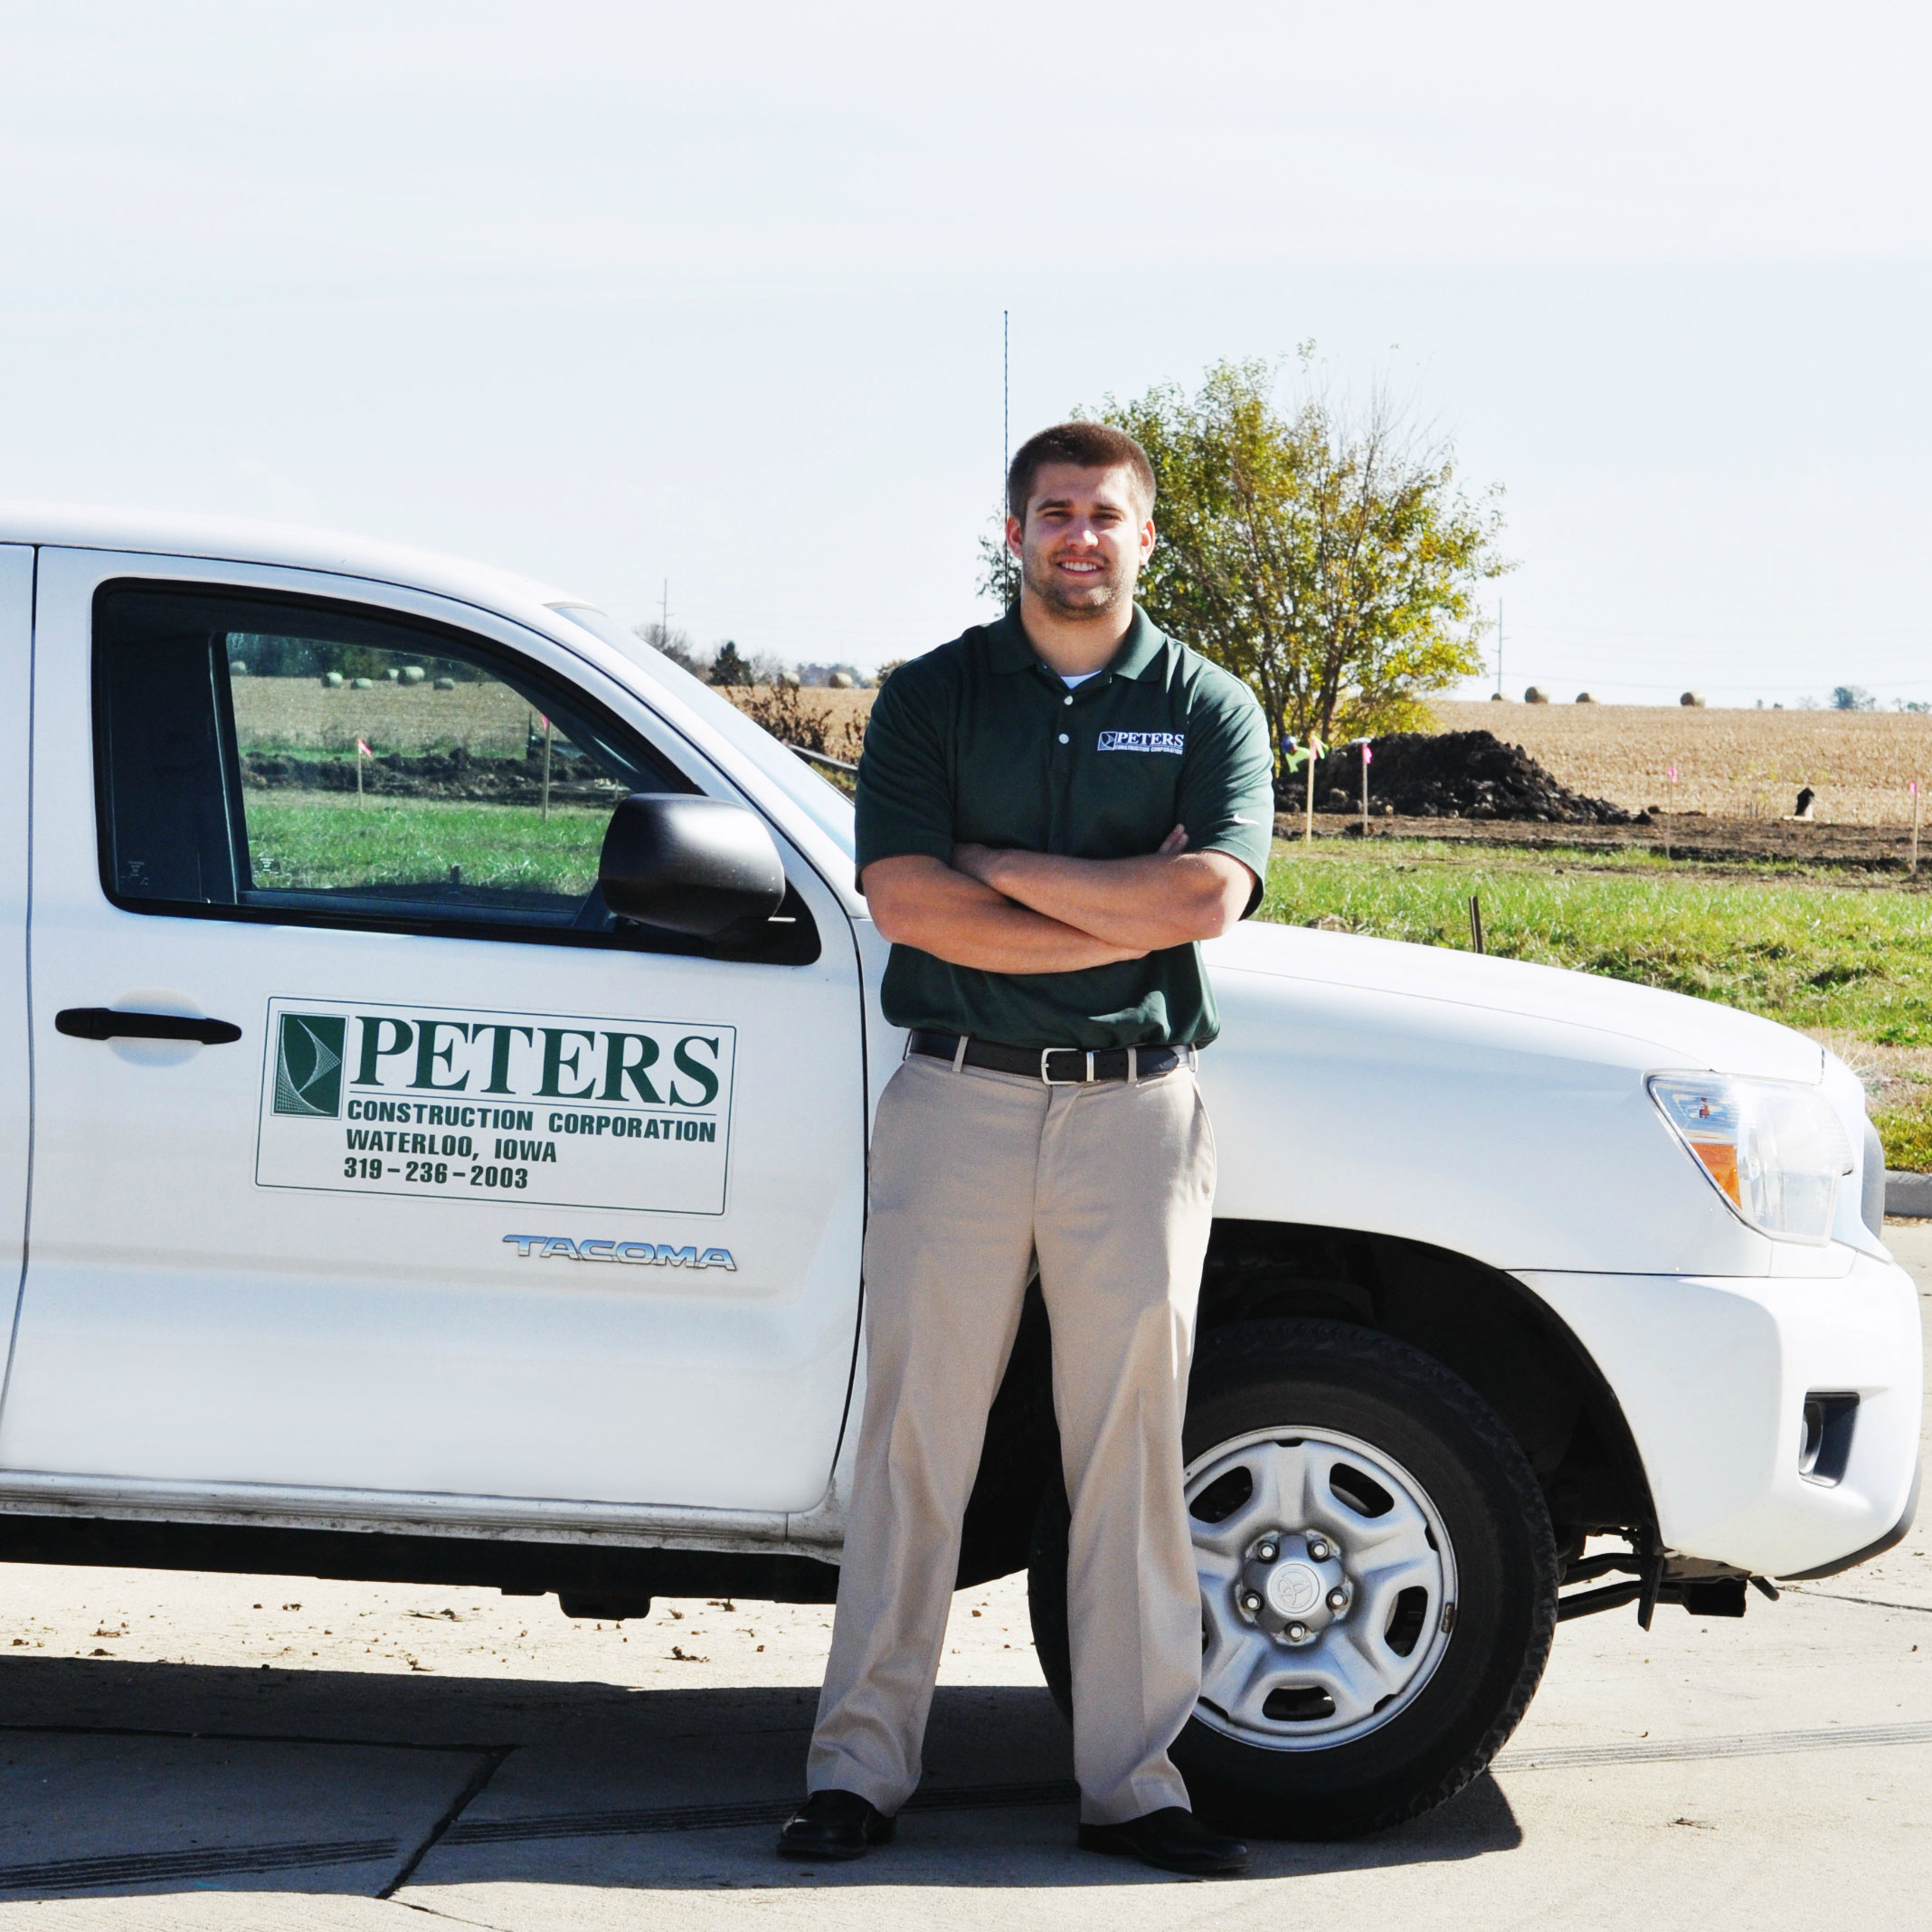 Peters Construction Corporation, Jon Paulson